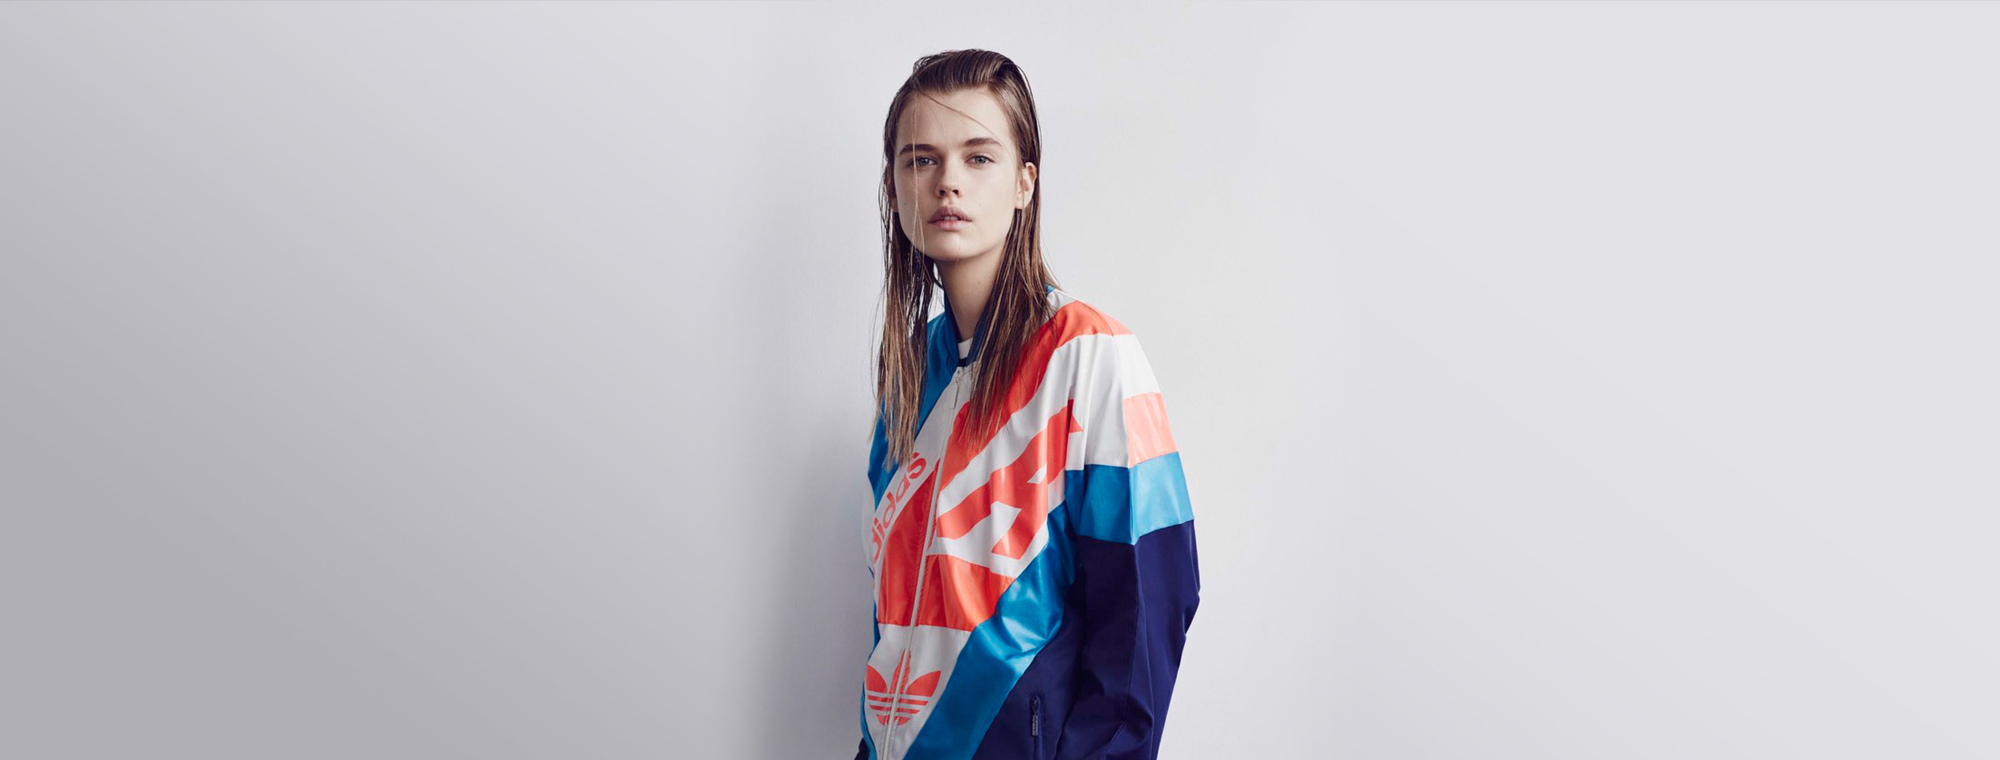 Adidas-Originals-Archive-Series-FW15-Header2